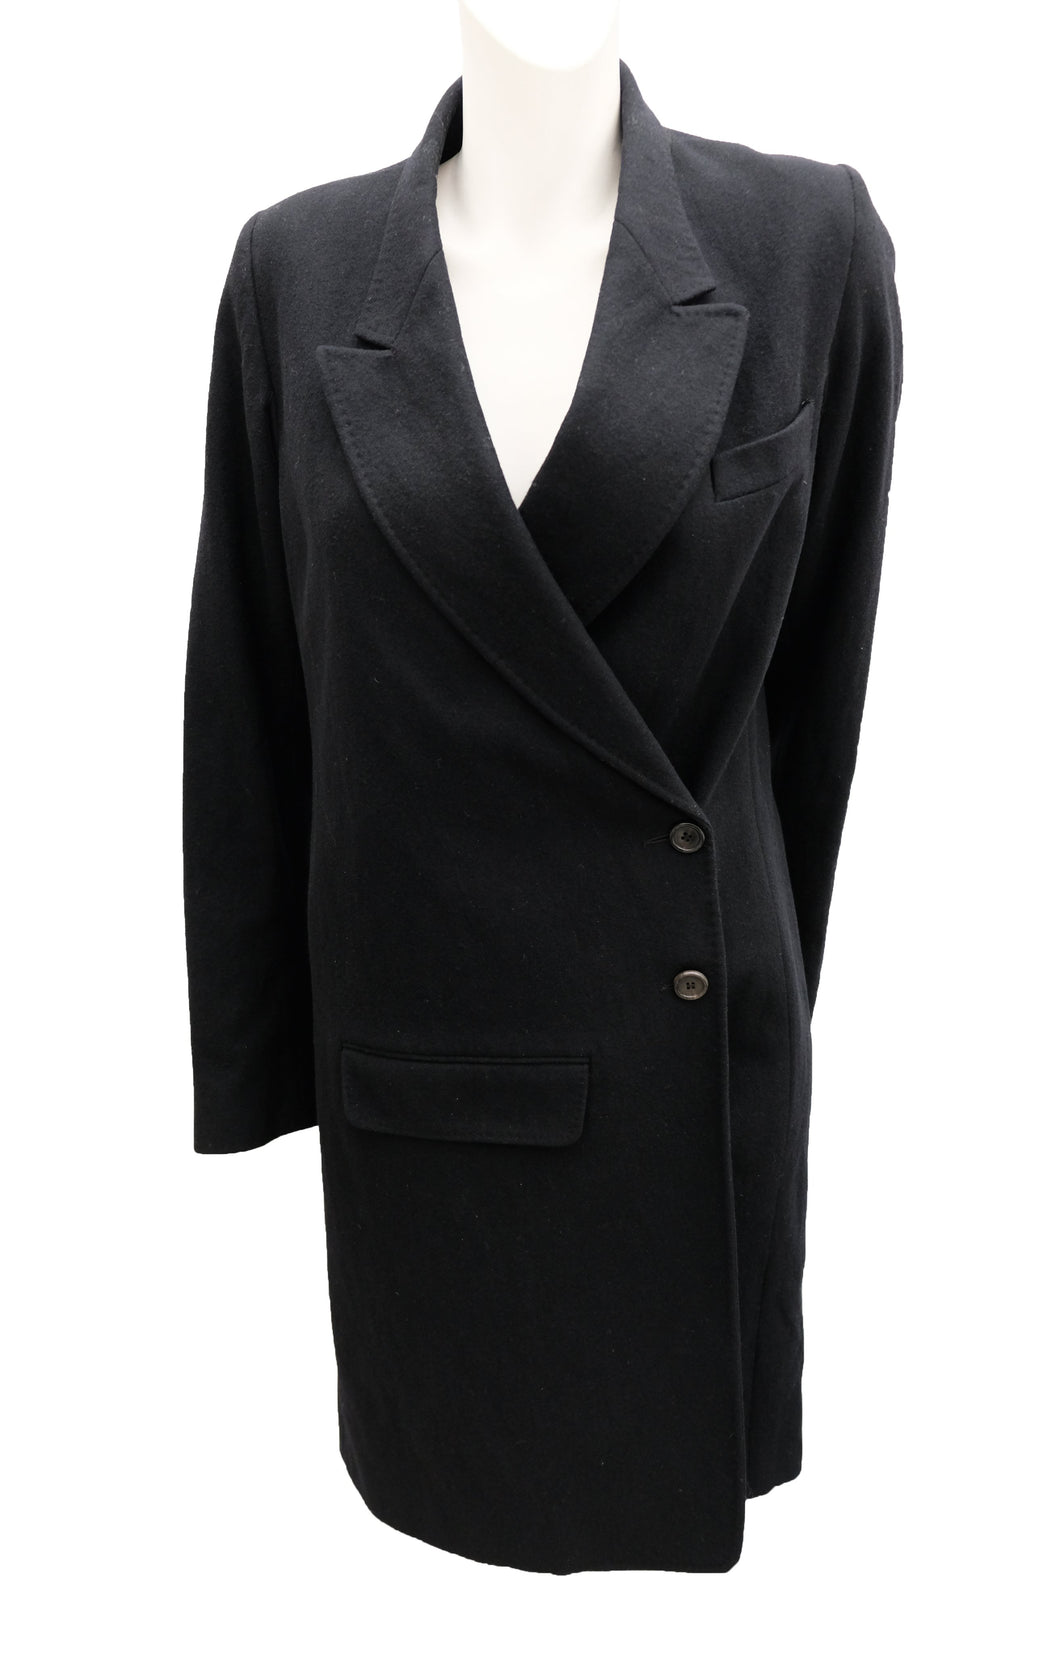 Ann Demeulemeester Long Asymmetric Black Wool Coat, UK10-12